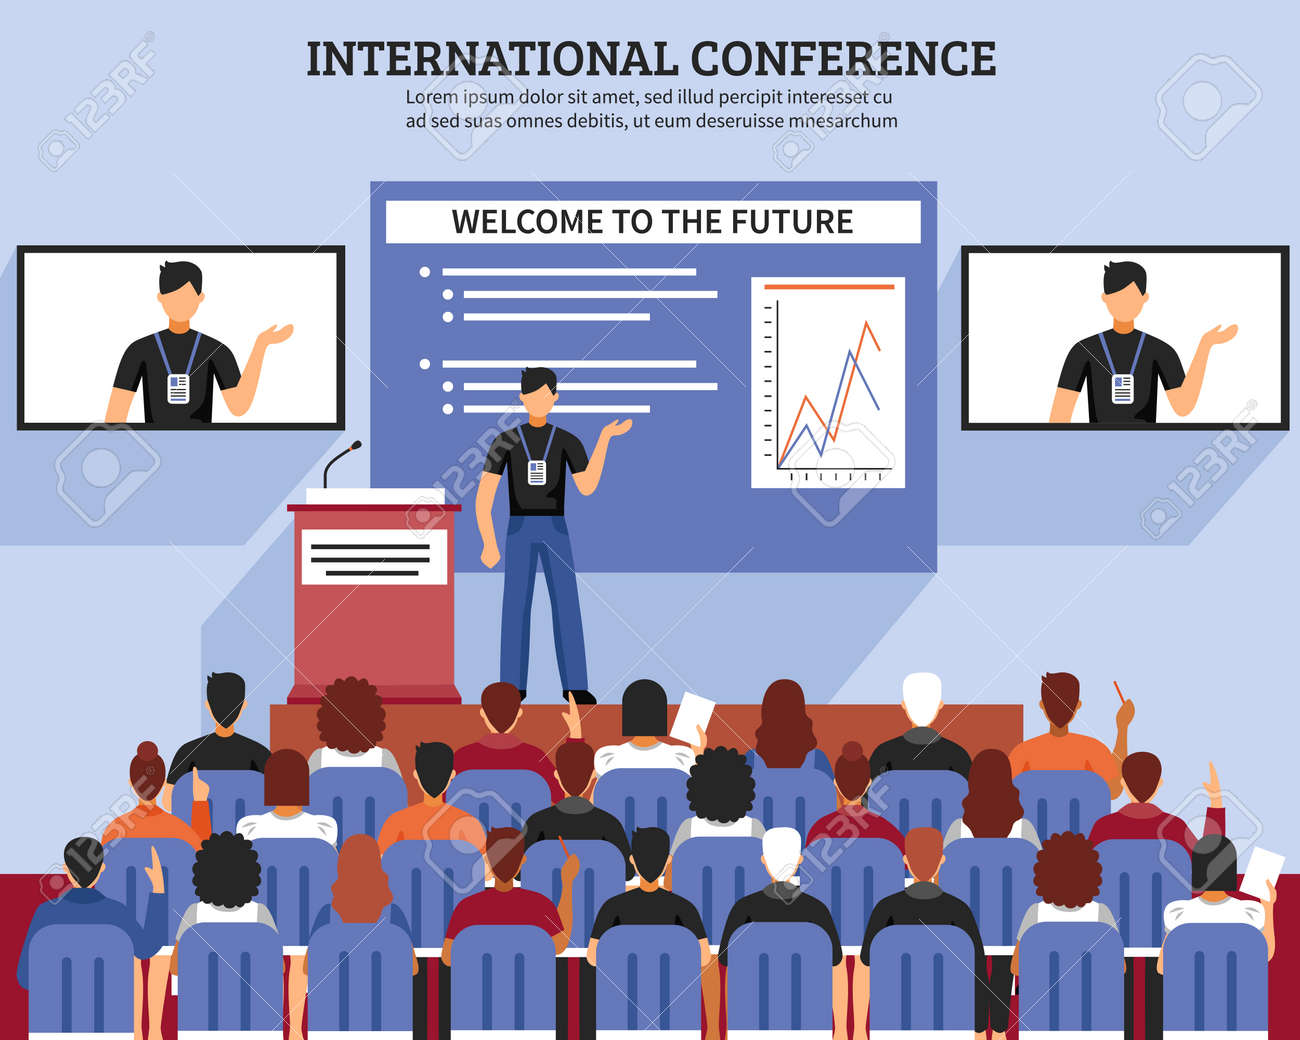 Presentation conference hall composition international conference welcome to the future descriptions vector illustration - 165524354